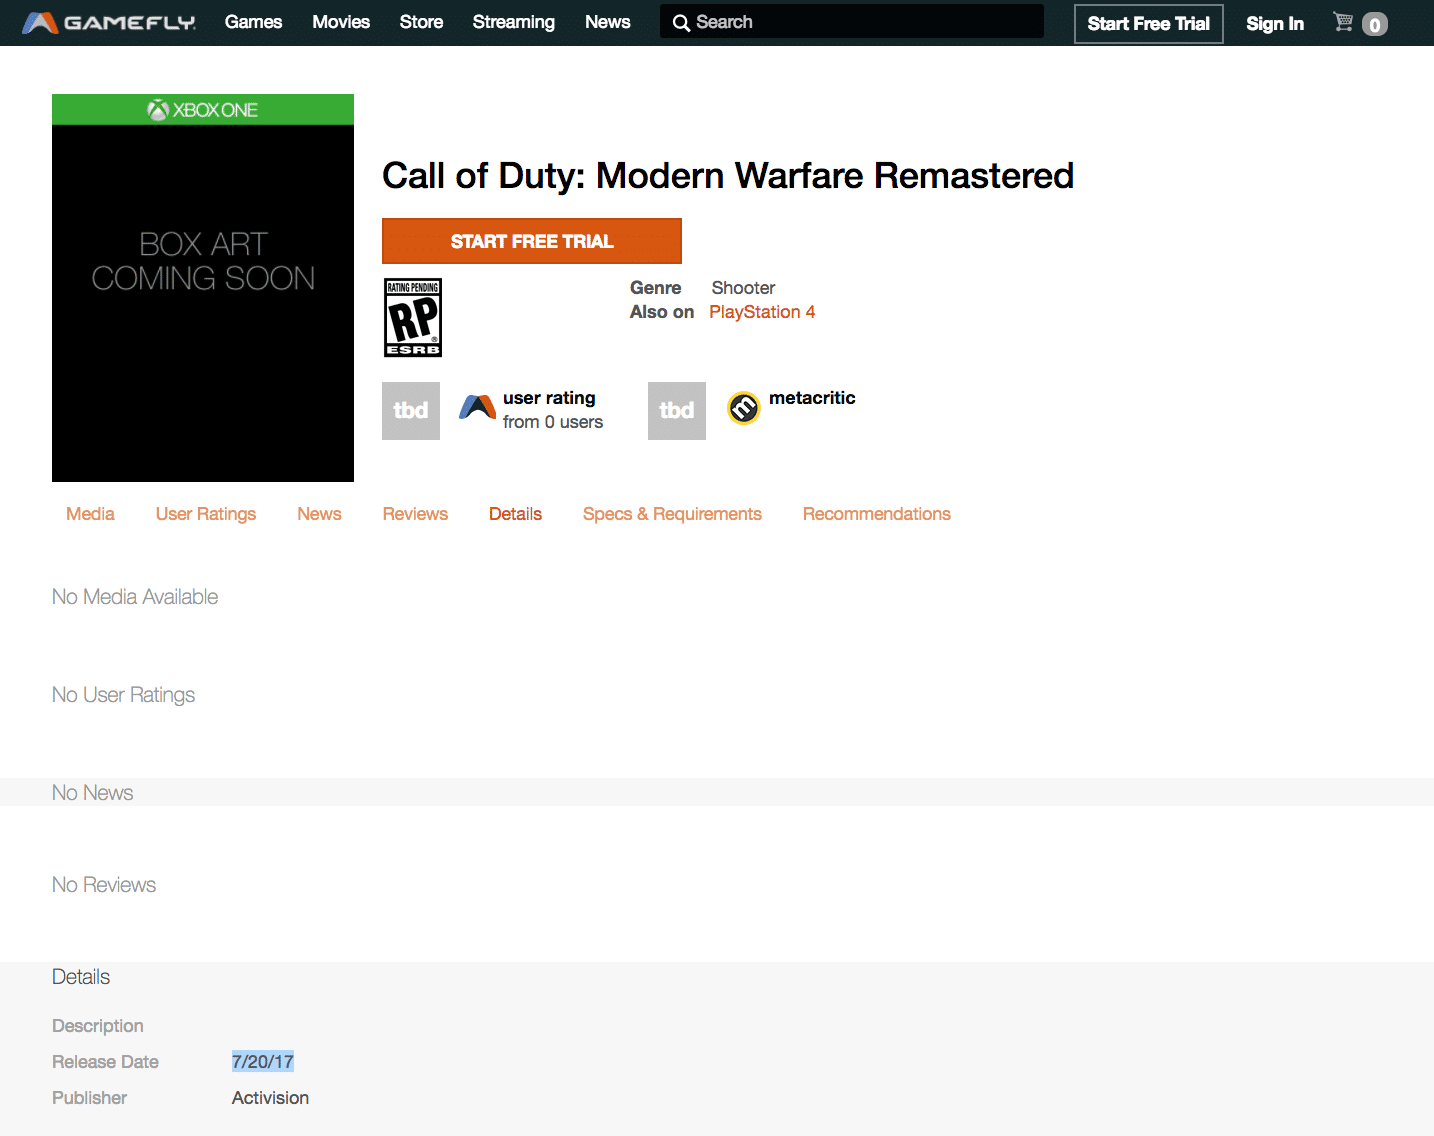 Call of Duty: Modern Warfare Remastered Getting Standalone Release In June?